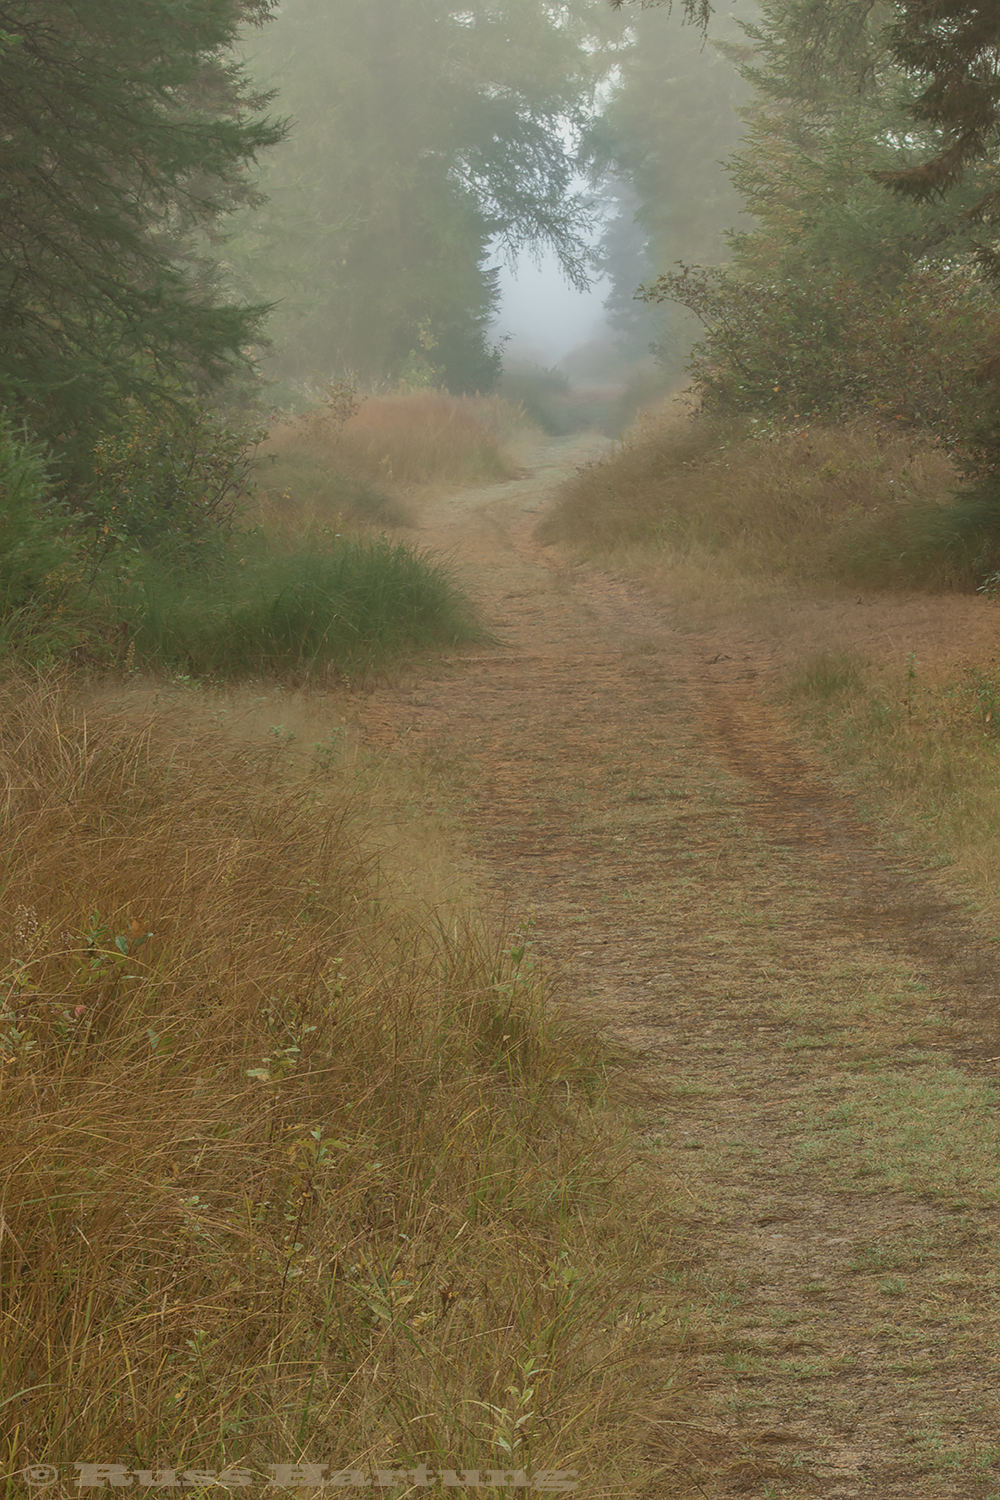 Bloomingdale Bog trail in the early morning fog.